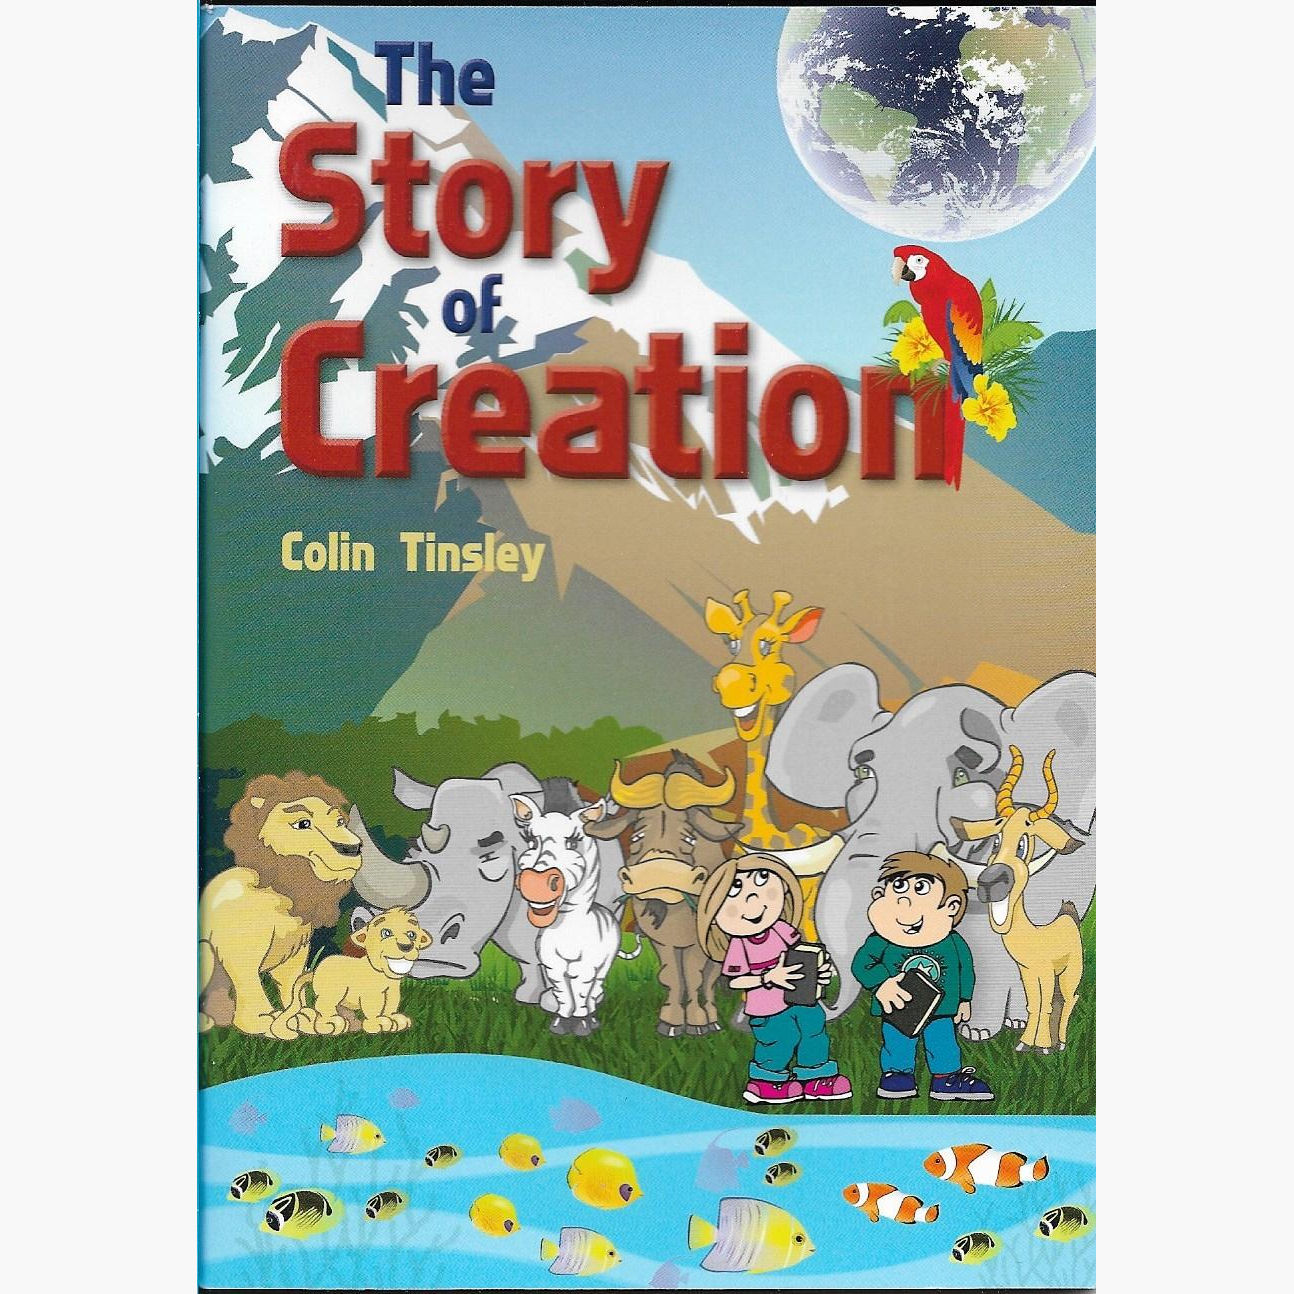 The story of the creation of the cartoon The Adventures of Leopold the Cat 53